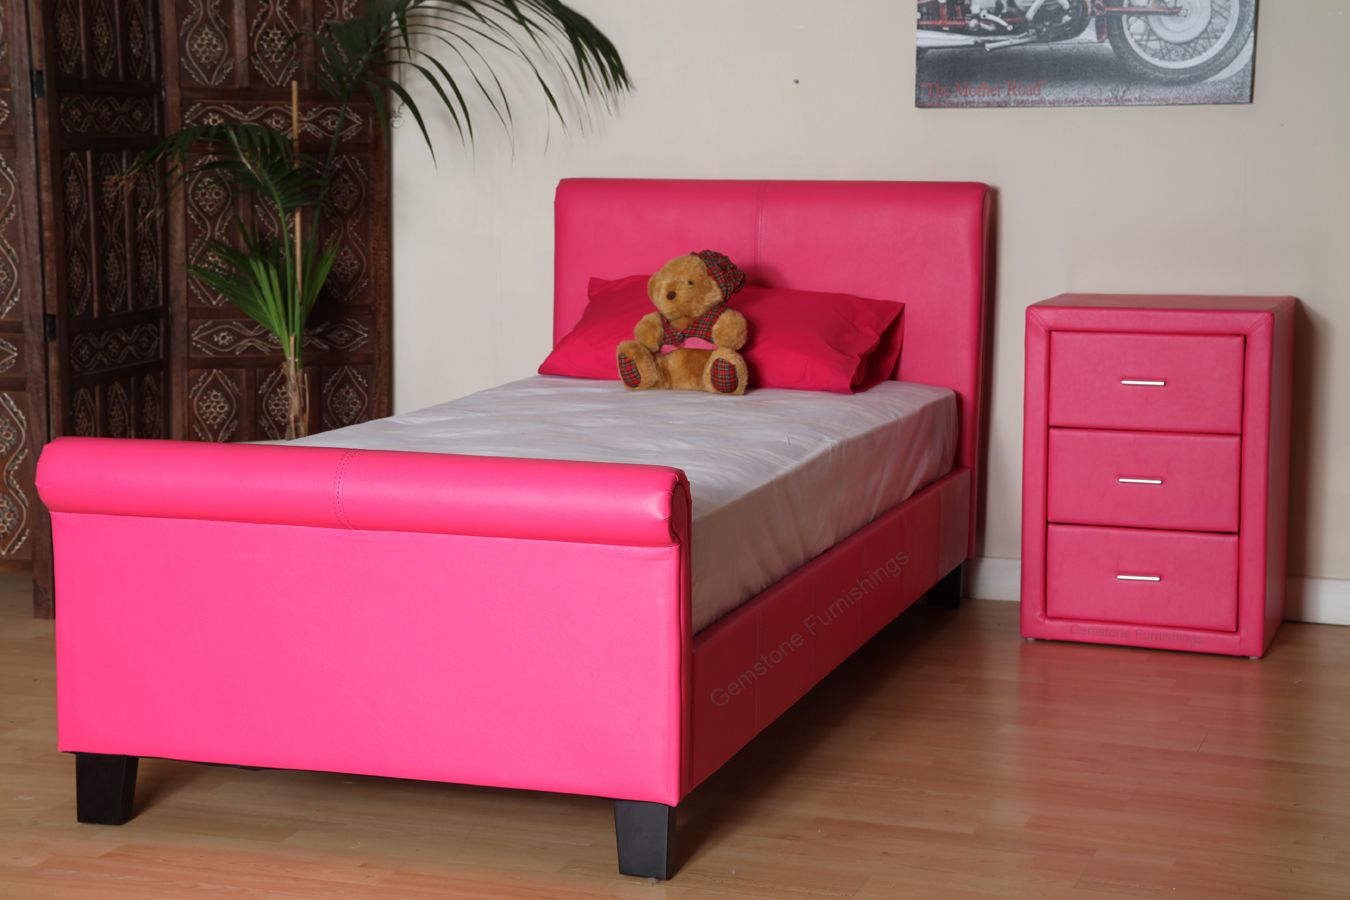 beautiful pink bed frame designs collection for girls room stunning armaan 4ft small double pink